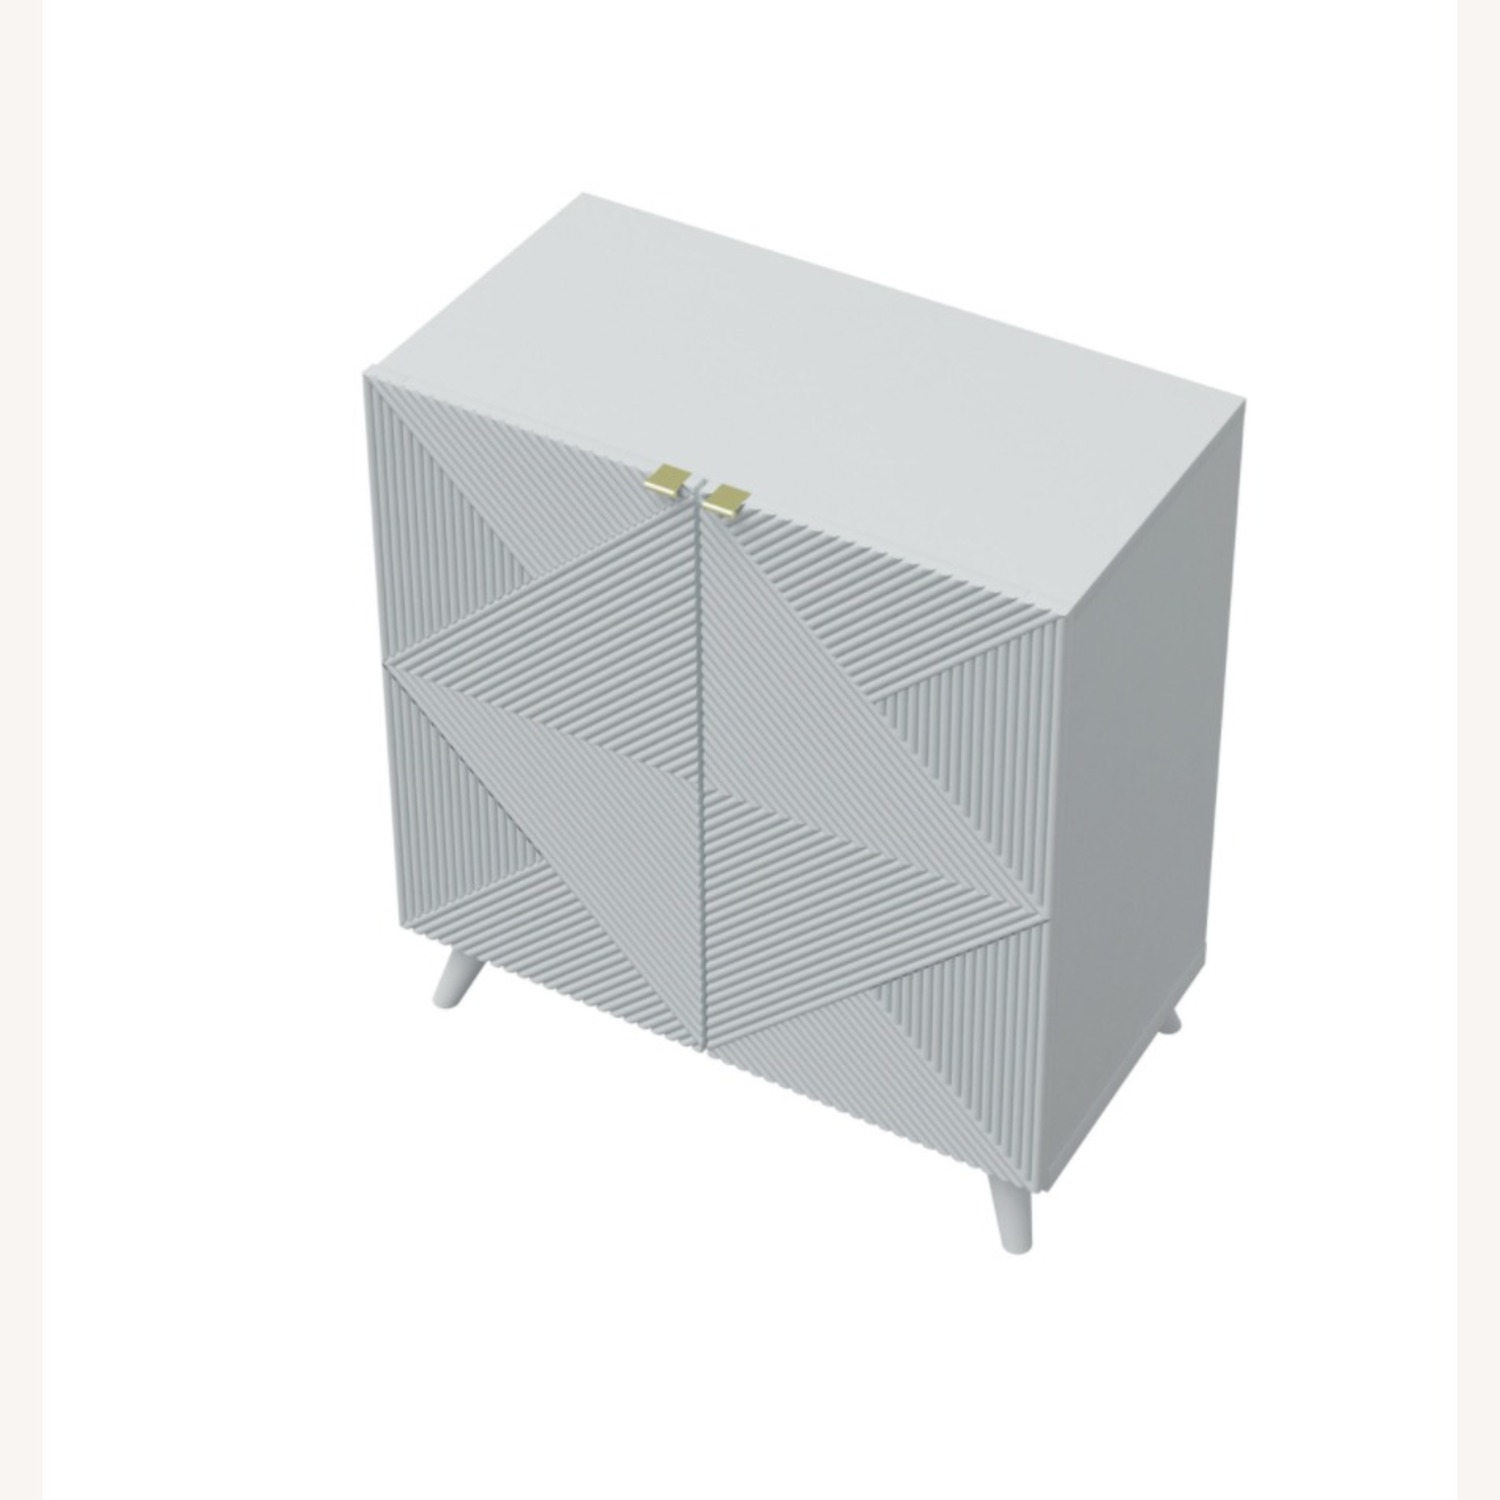 Two-Door Geometric Cabinet (White Pearl) - image-1